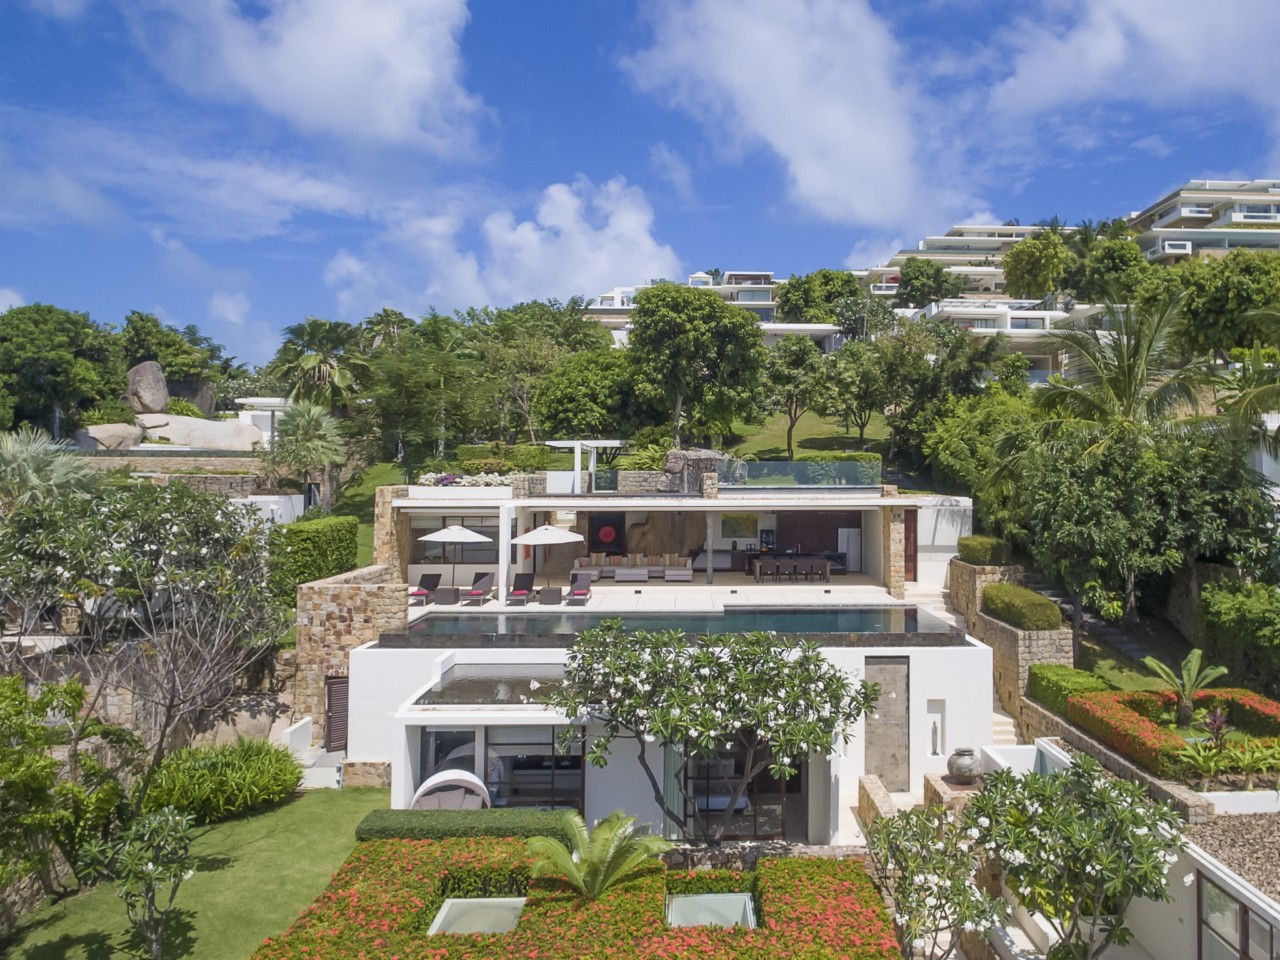 A Hollywood Hills Hotel Perched on a Beach-Front Hillside in Koh Samui